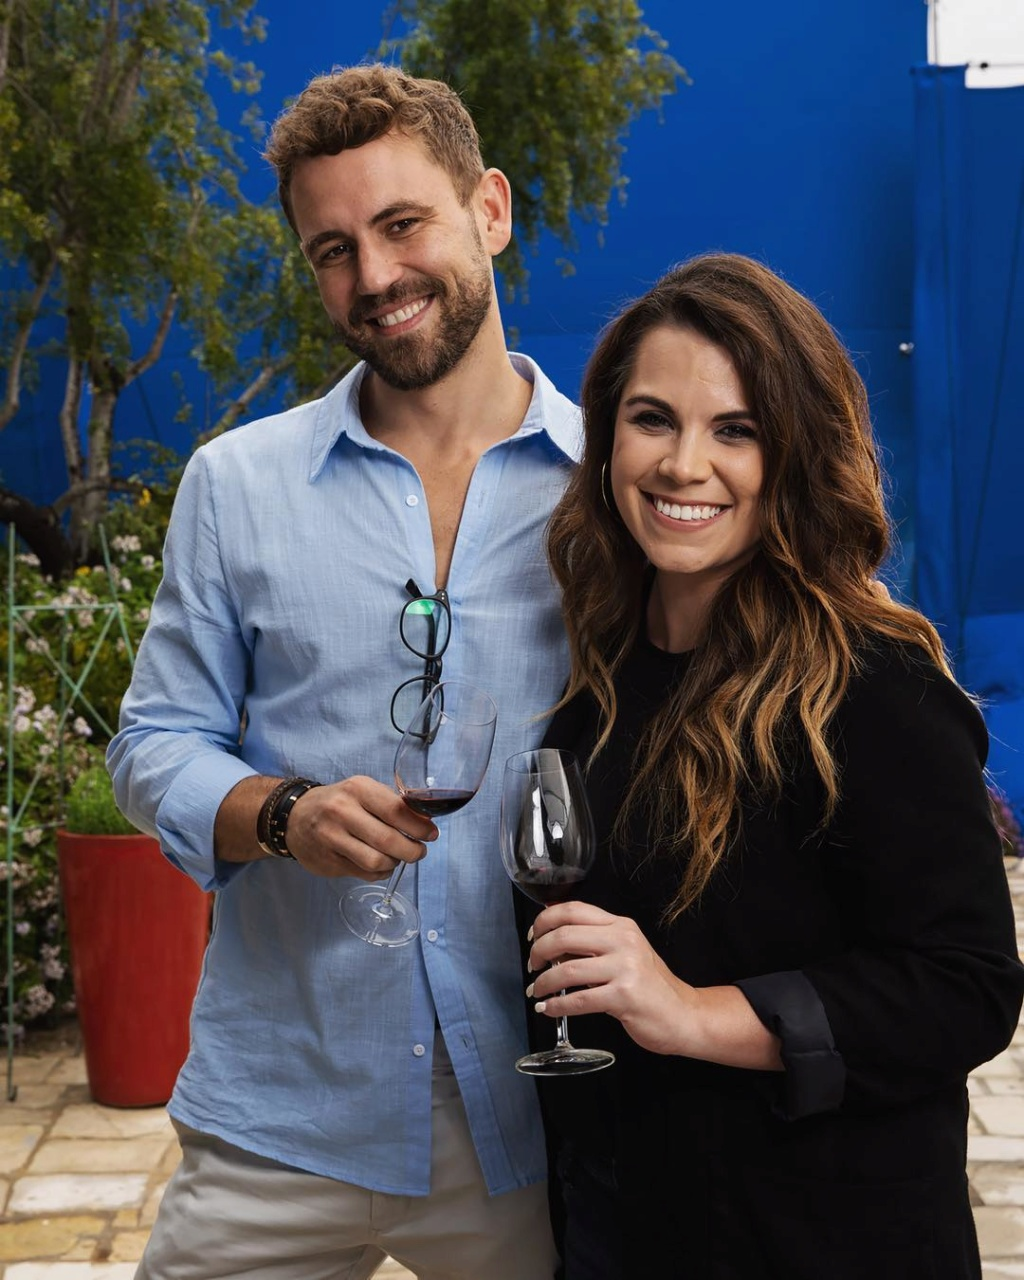 Nick Viall - Bachelor 21 - FAN Forum - Discussion #27 - Page 51 53207710